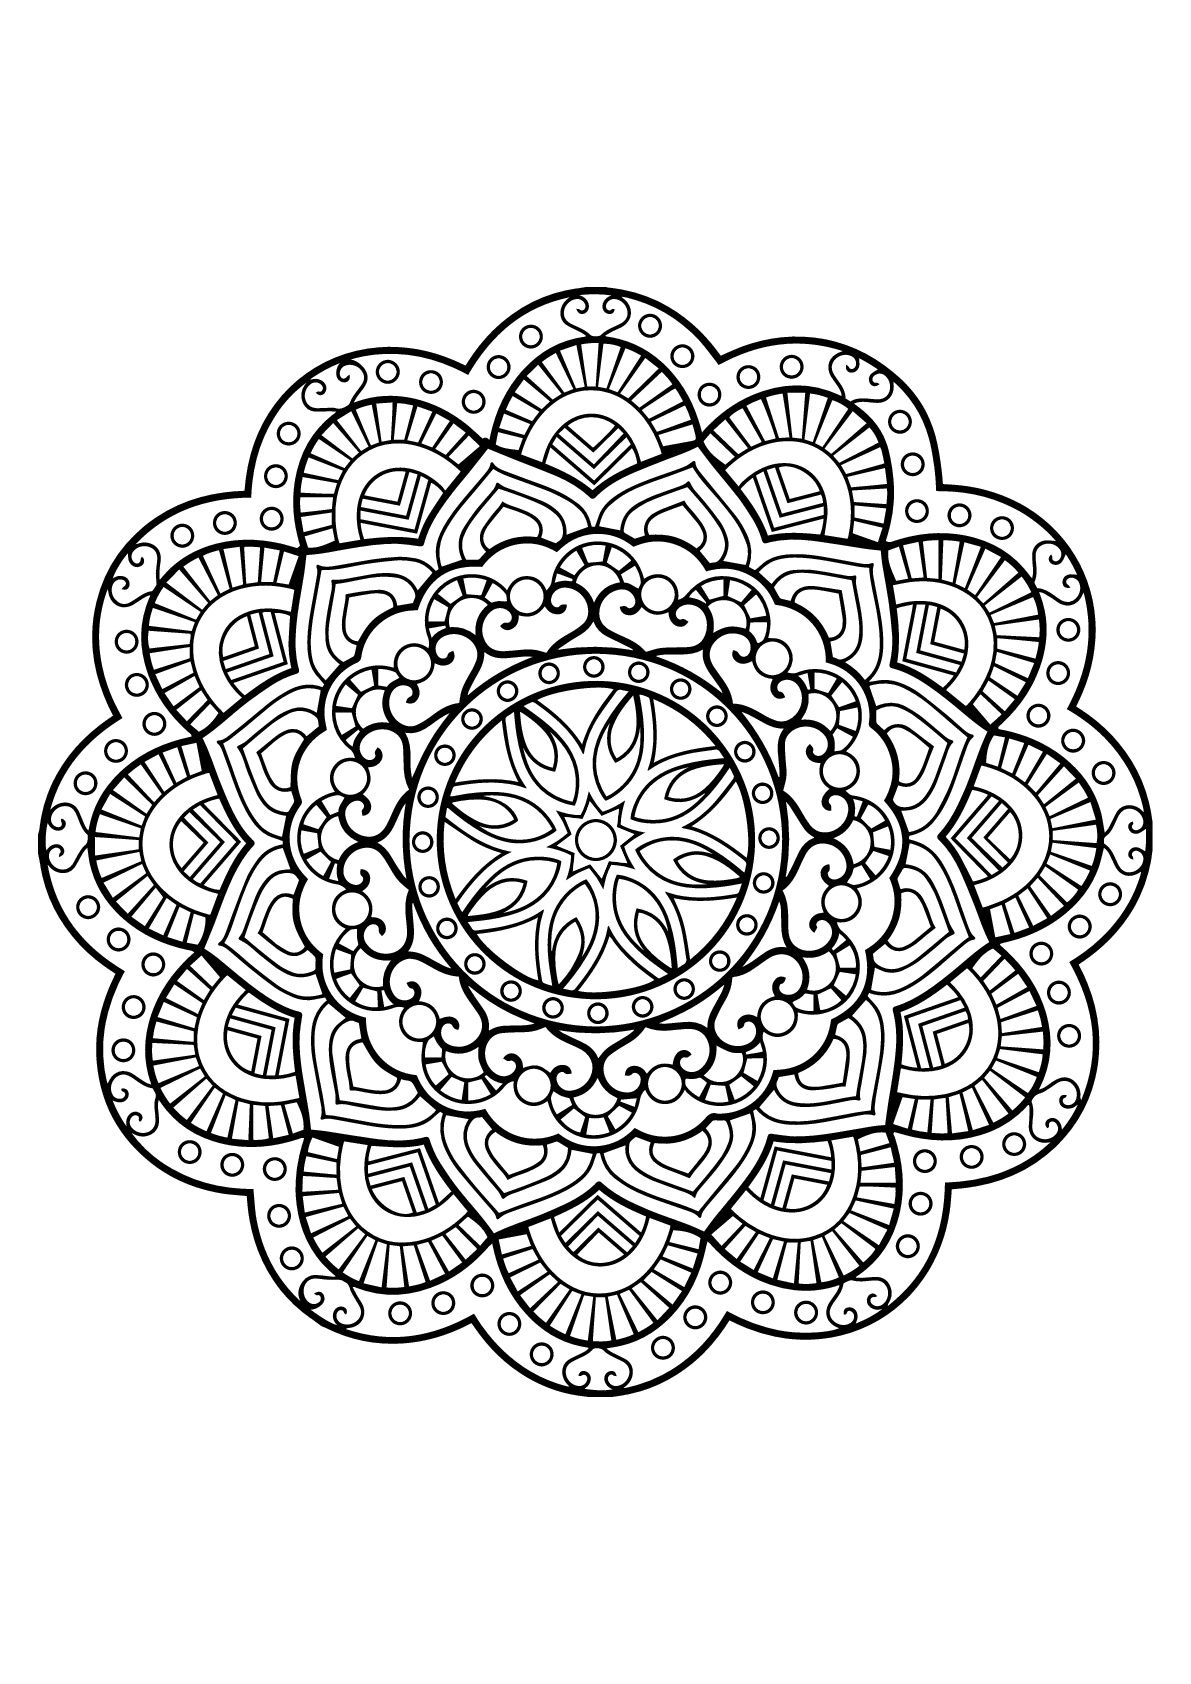 Here Are Difficult Mandalas Coloring Pages For Adults To Print For Free Mandala Is A Sanskri Mandala Coloring Mandala Coloring Books Mandala Coloring Pages